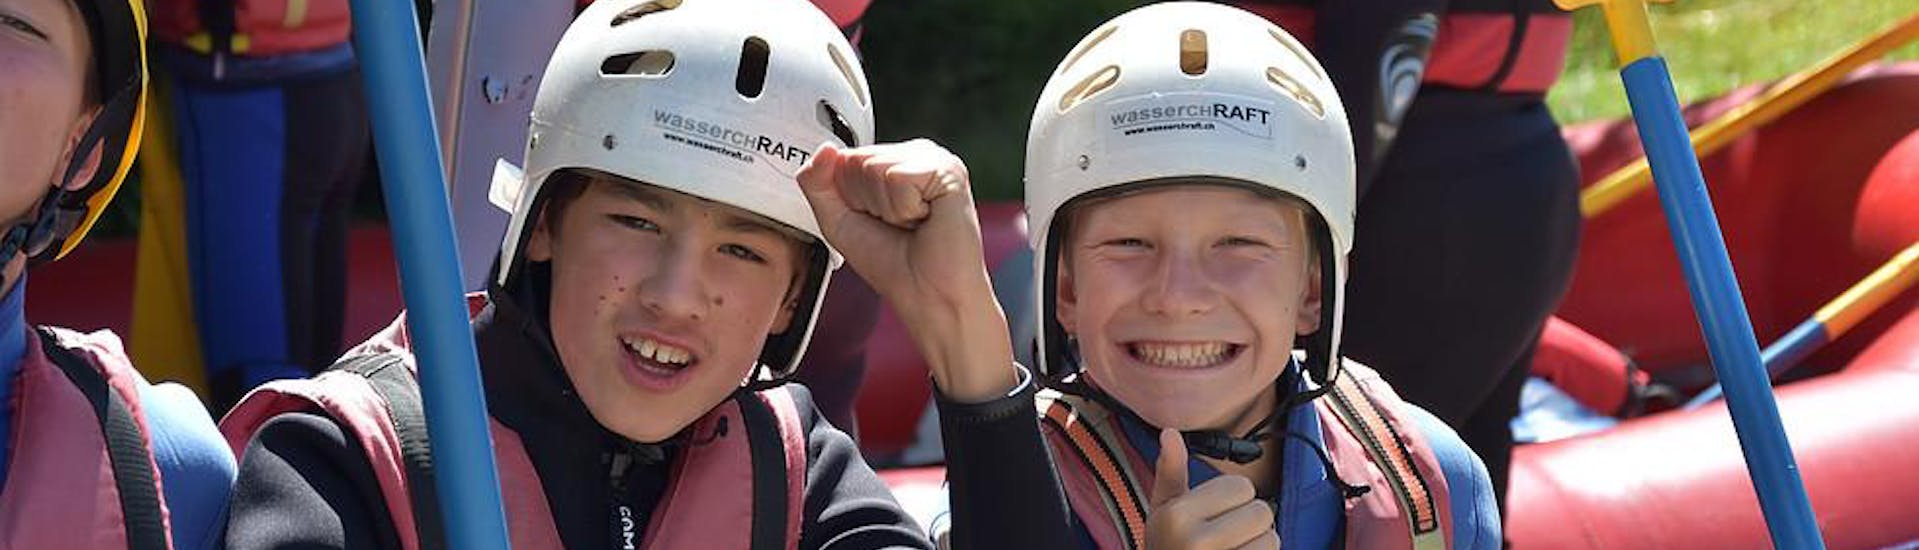 Rafting Day-Tour for Young and Old - Vorderrhein